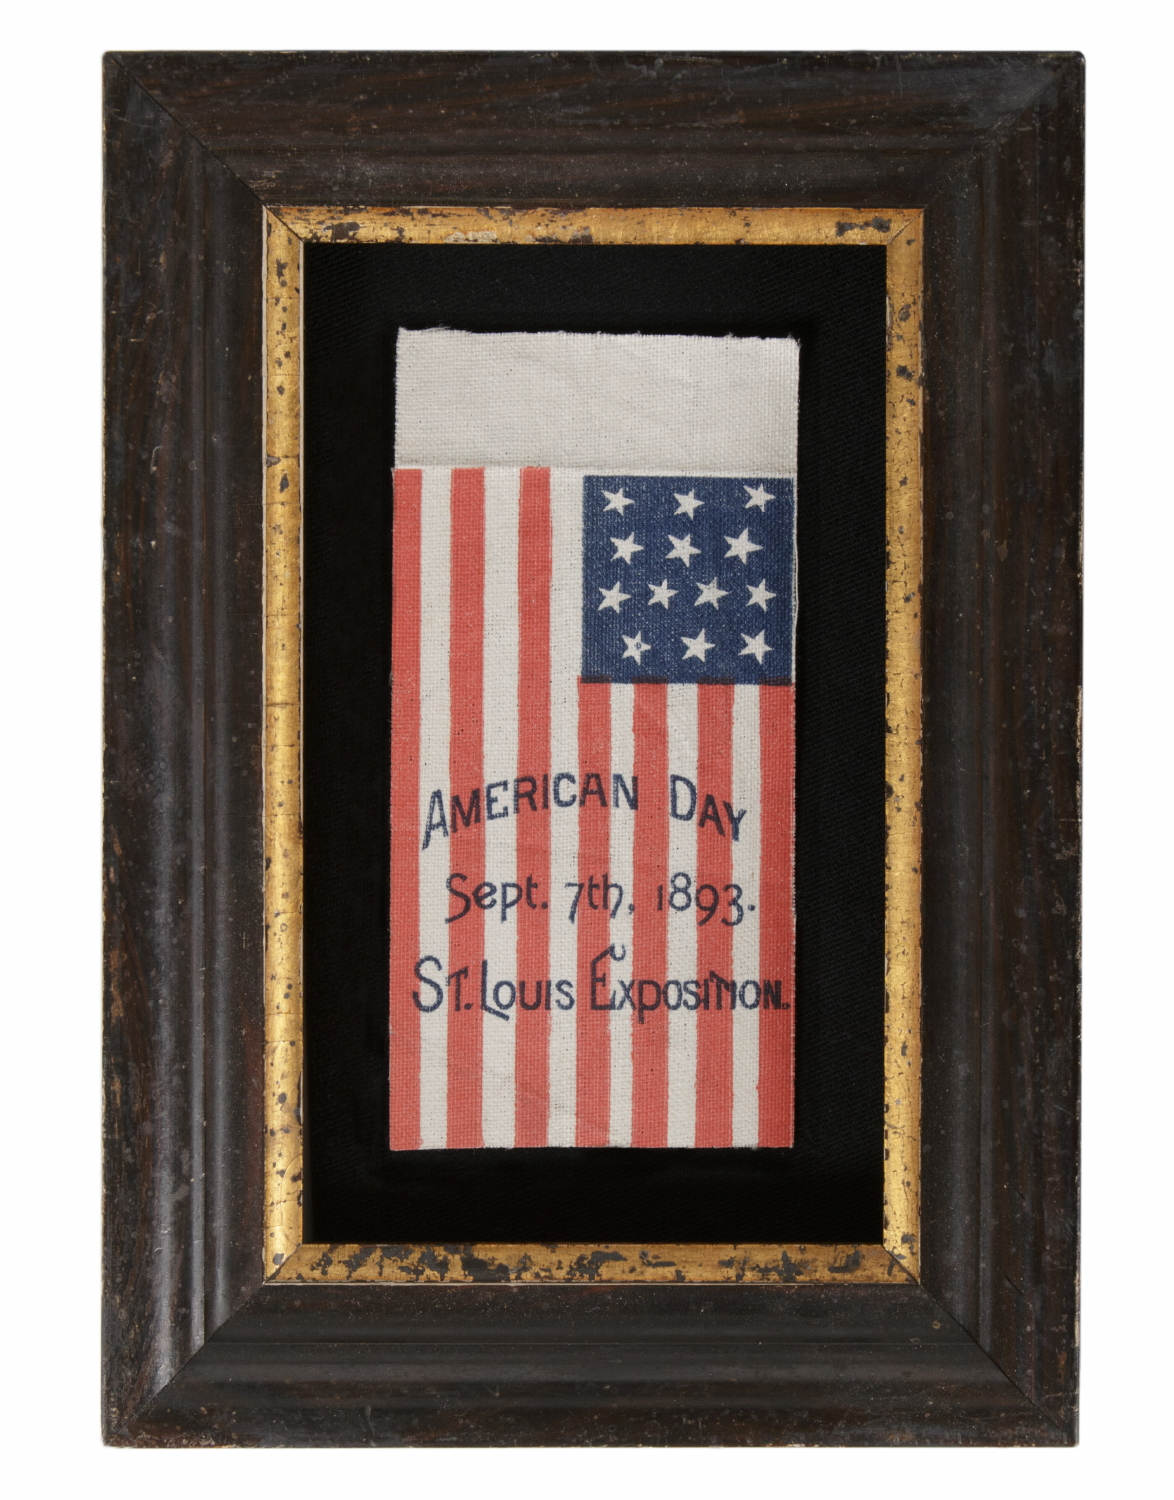 13 STARS IN A PATTERN UNIQUE TO THIS STYLE OF ANTIQUE PARADE FLAG, MADE TO